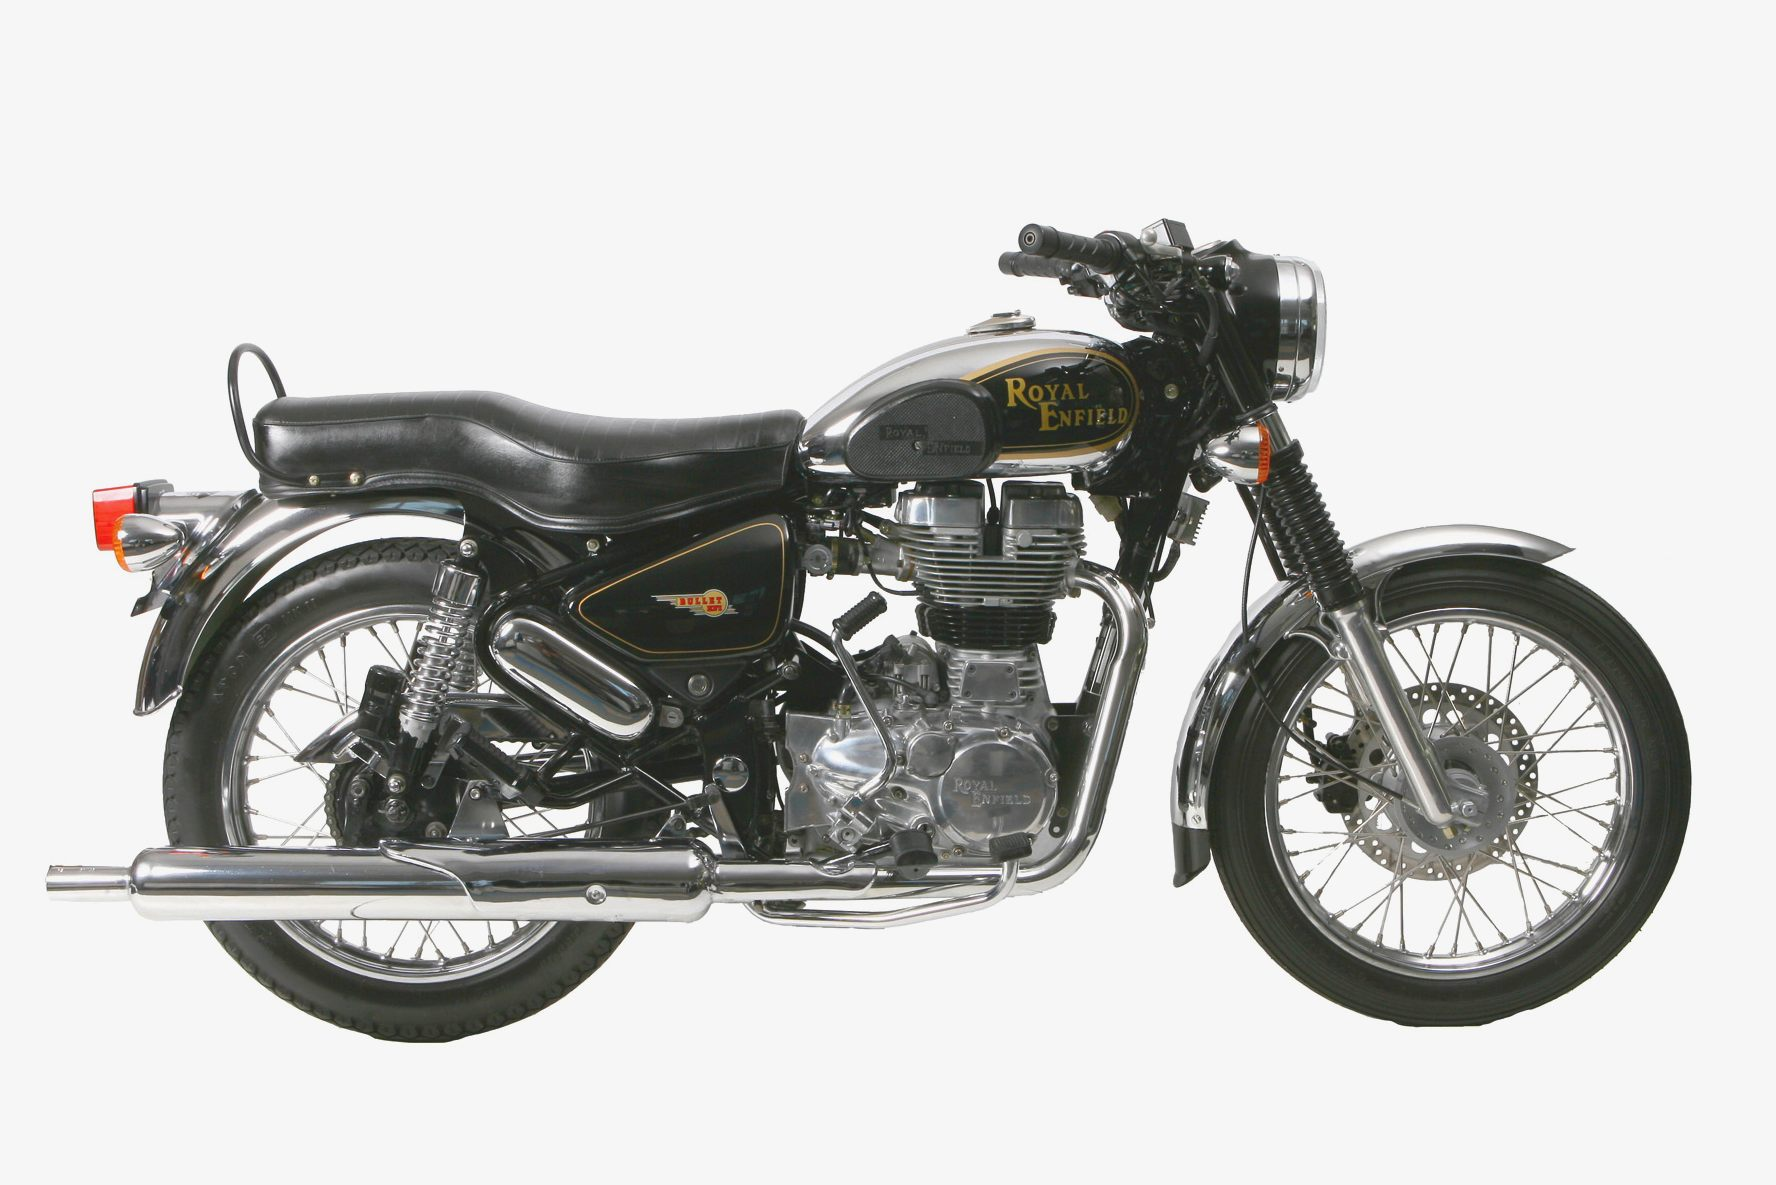 Royal Enfield Bullet 500 ES Deluxe 2006 images #123712